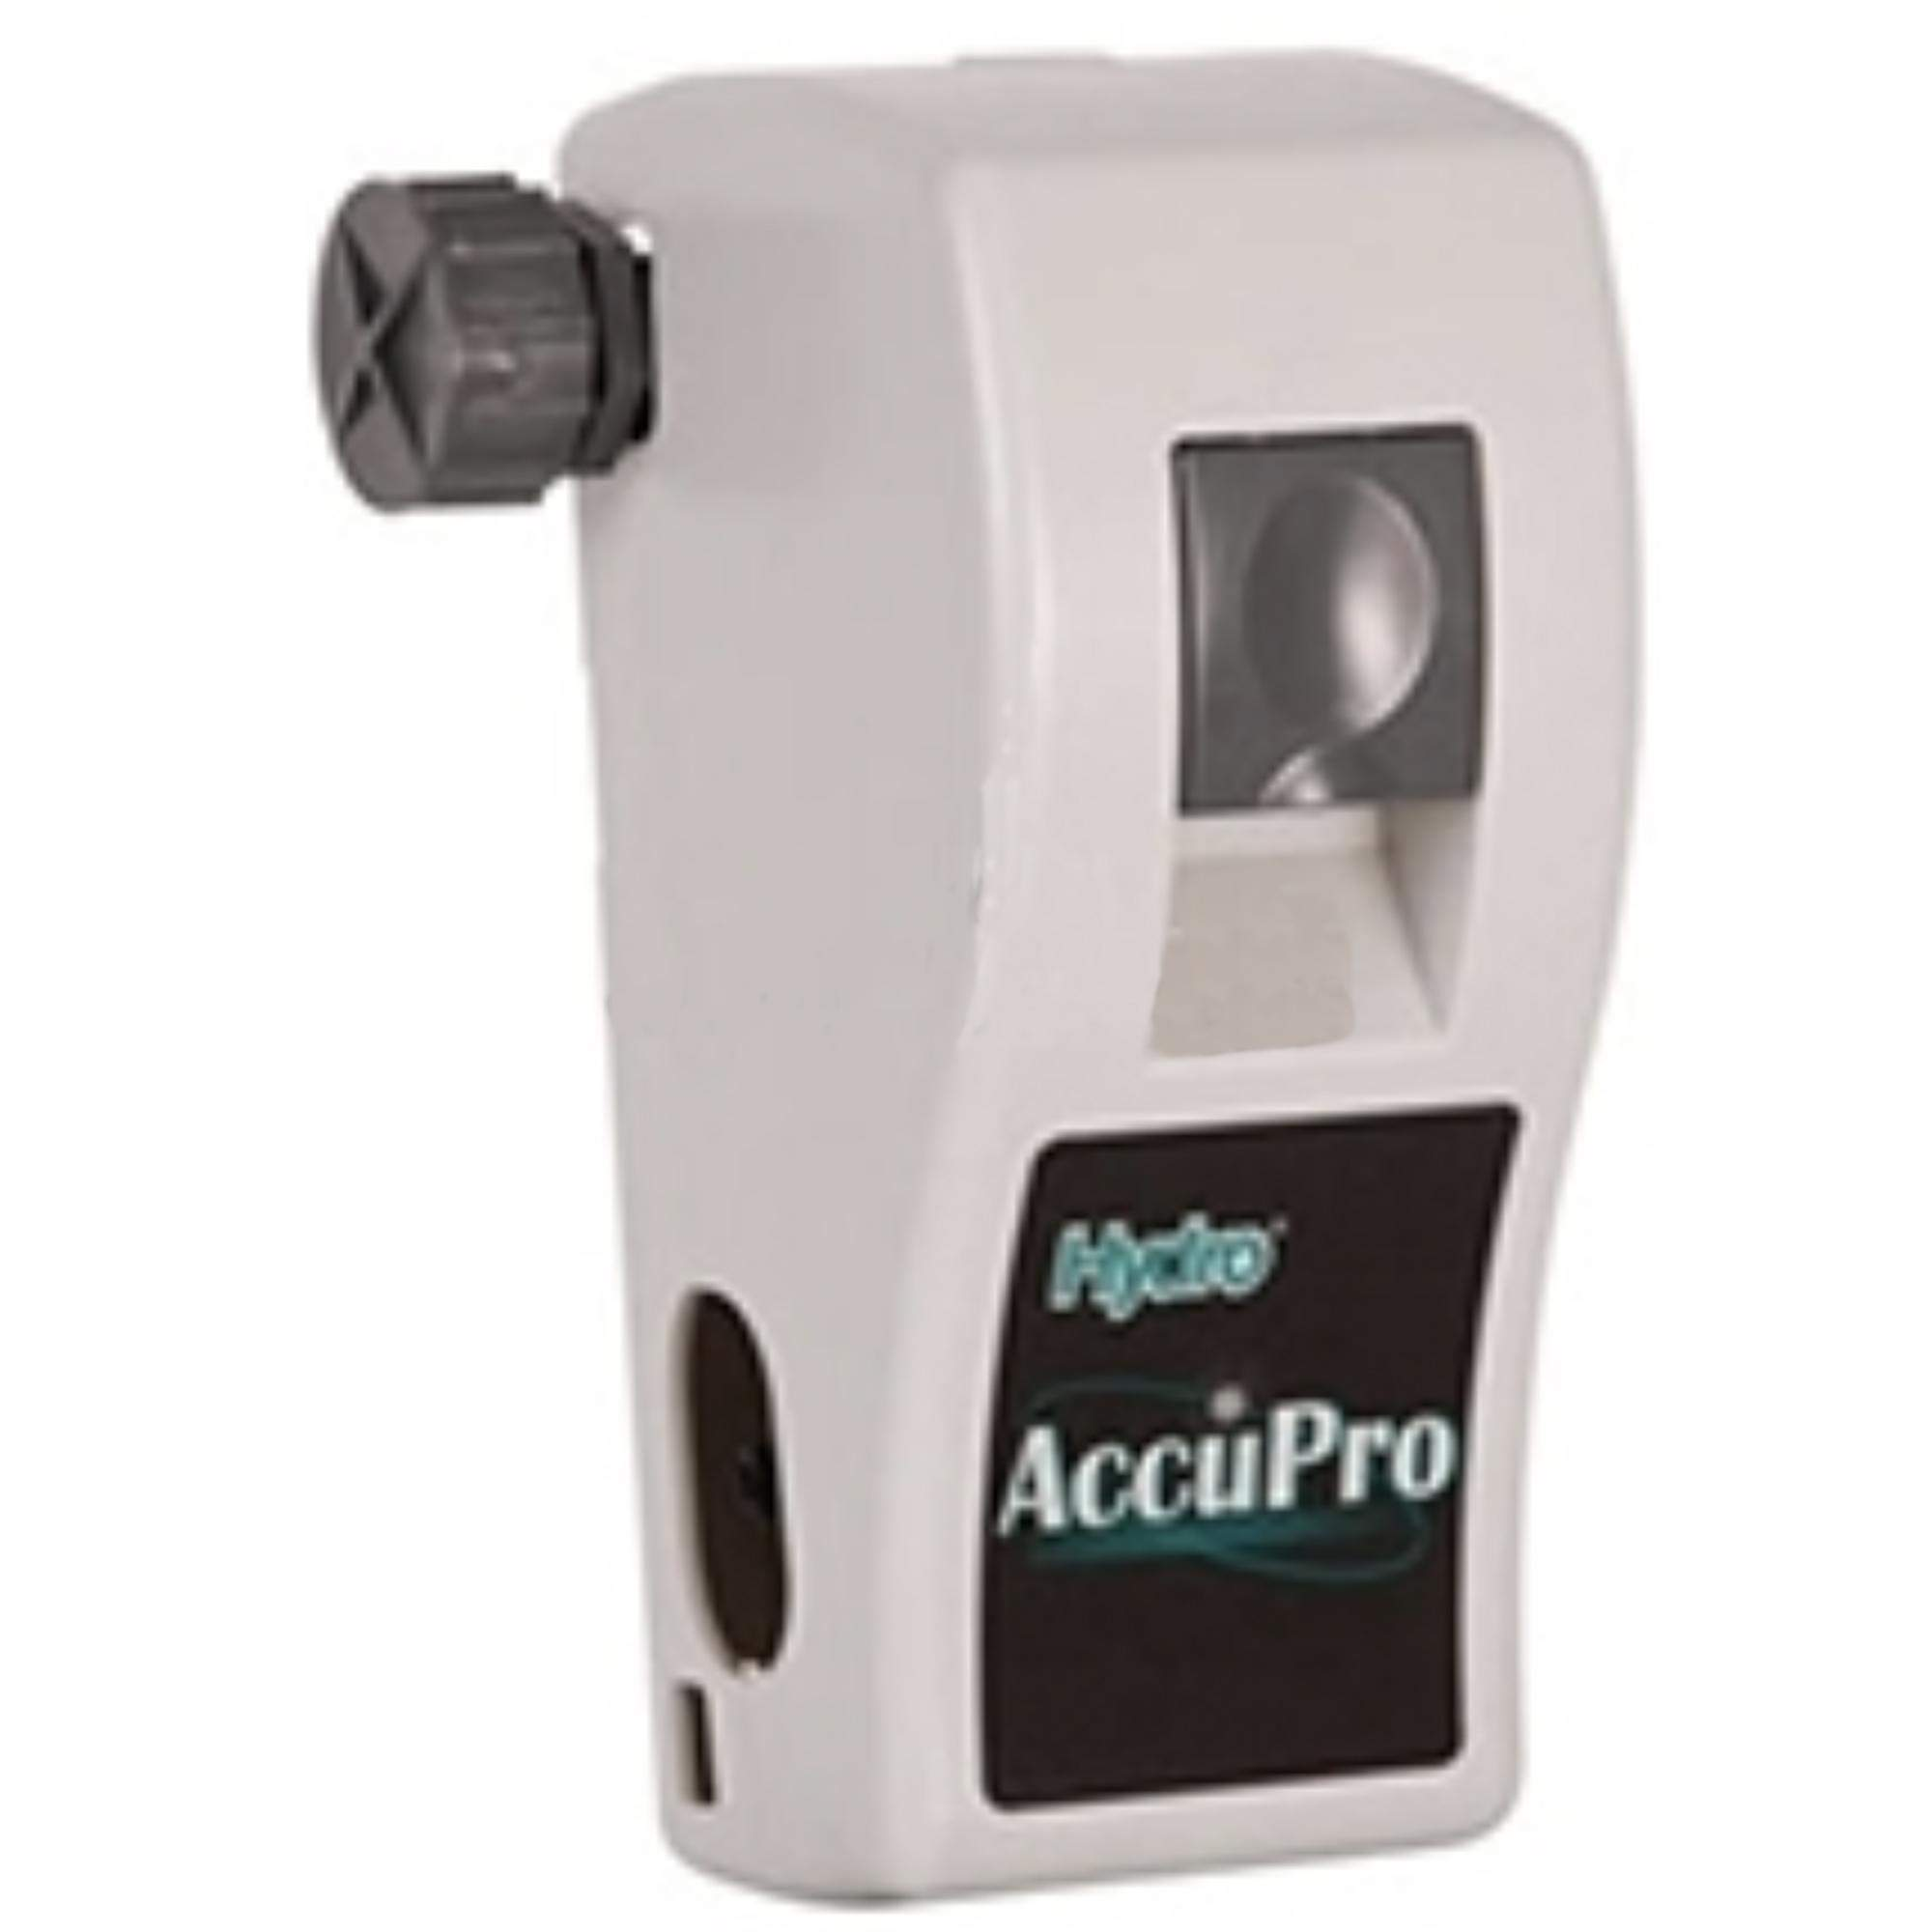 Accupro Bottle - Dispenser 2000x2000px copy.jpg